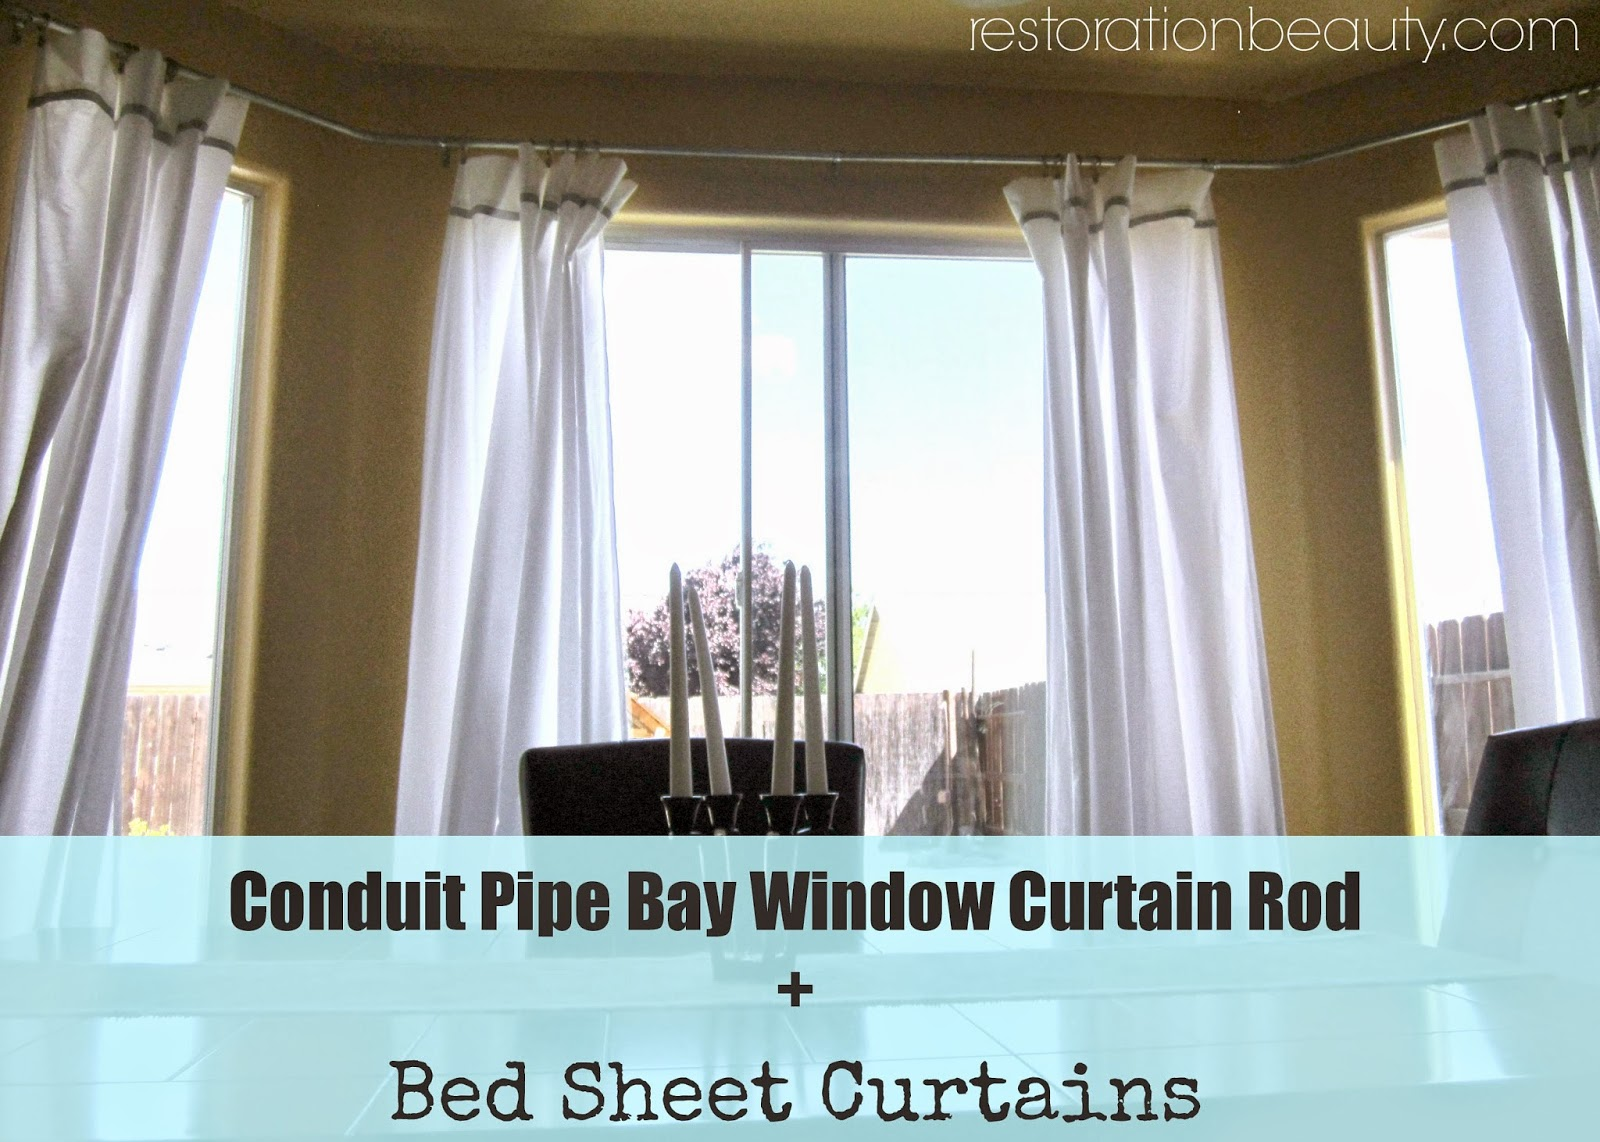 ... Beauty: Conduit Pipe Bay Window Curtain Rod + Bed Sheet Curtains